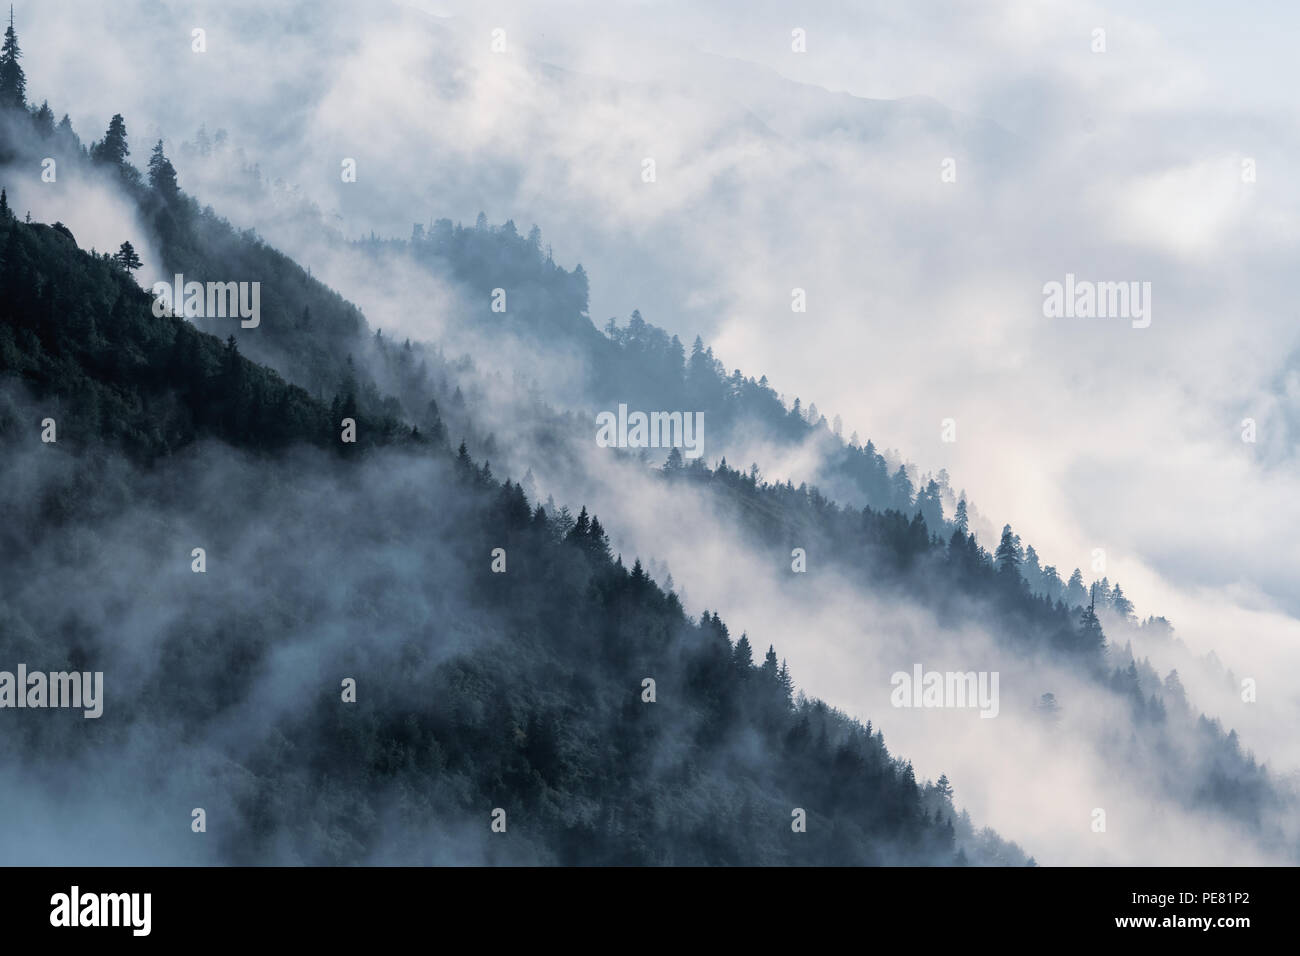 Forested mountain slope in low lying valley fog with silhouettes of evergreen conifers shrouded in mist. Scenic cloudy landscape in Kackar Mountains - Stock Image